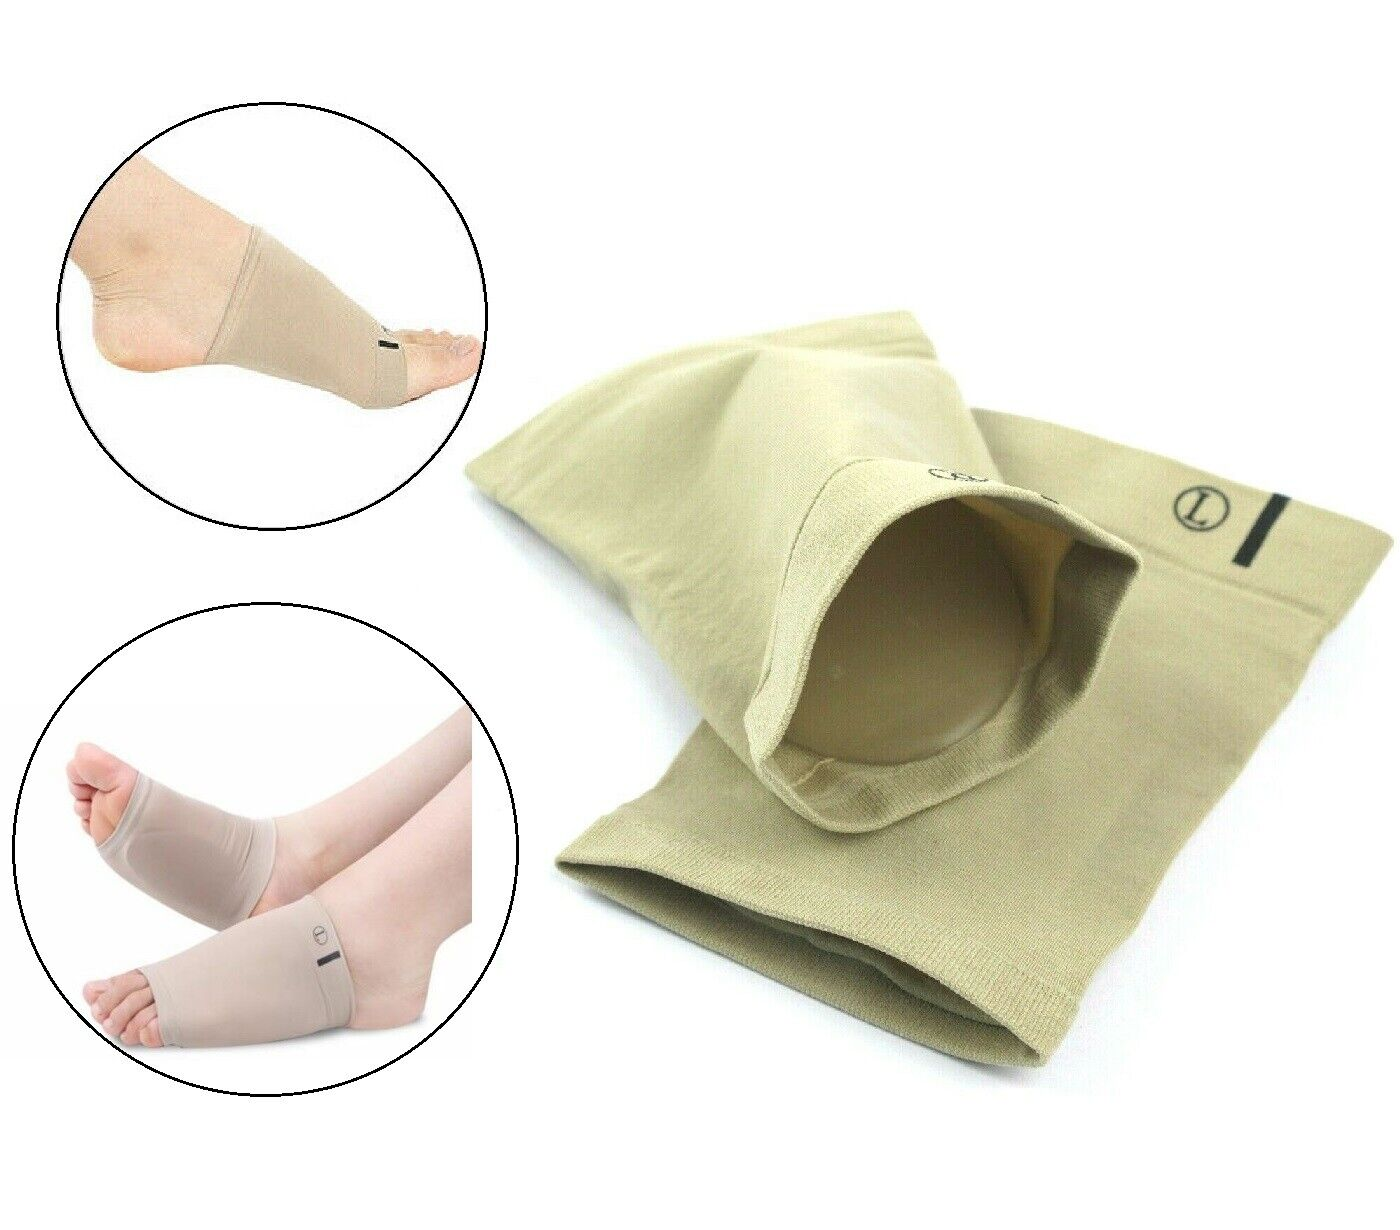 Arch Support Gel Orthotic Insole Plantar Fasciitis Foot Slee